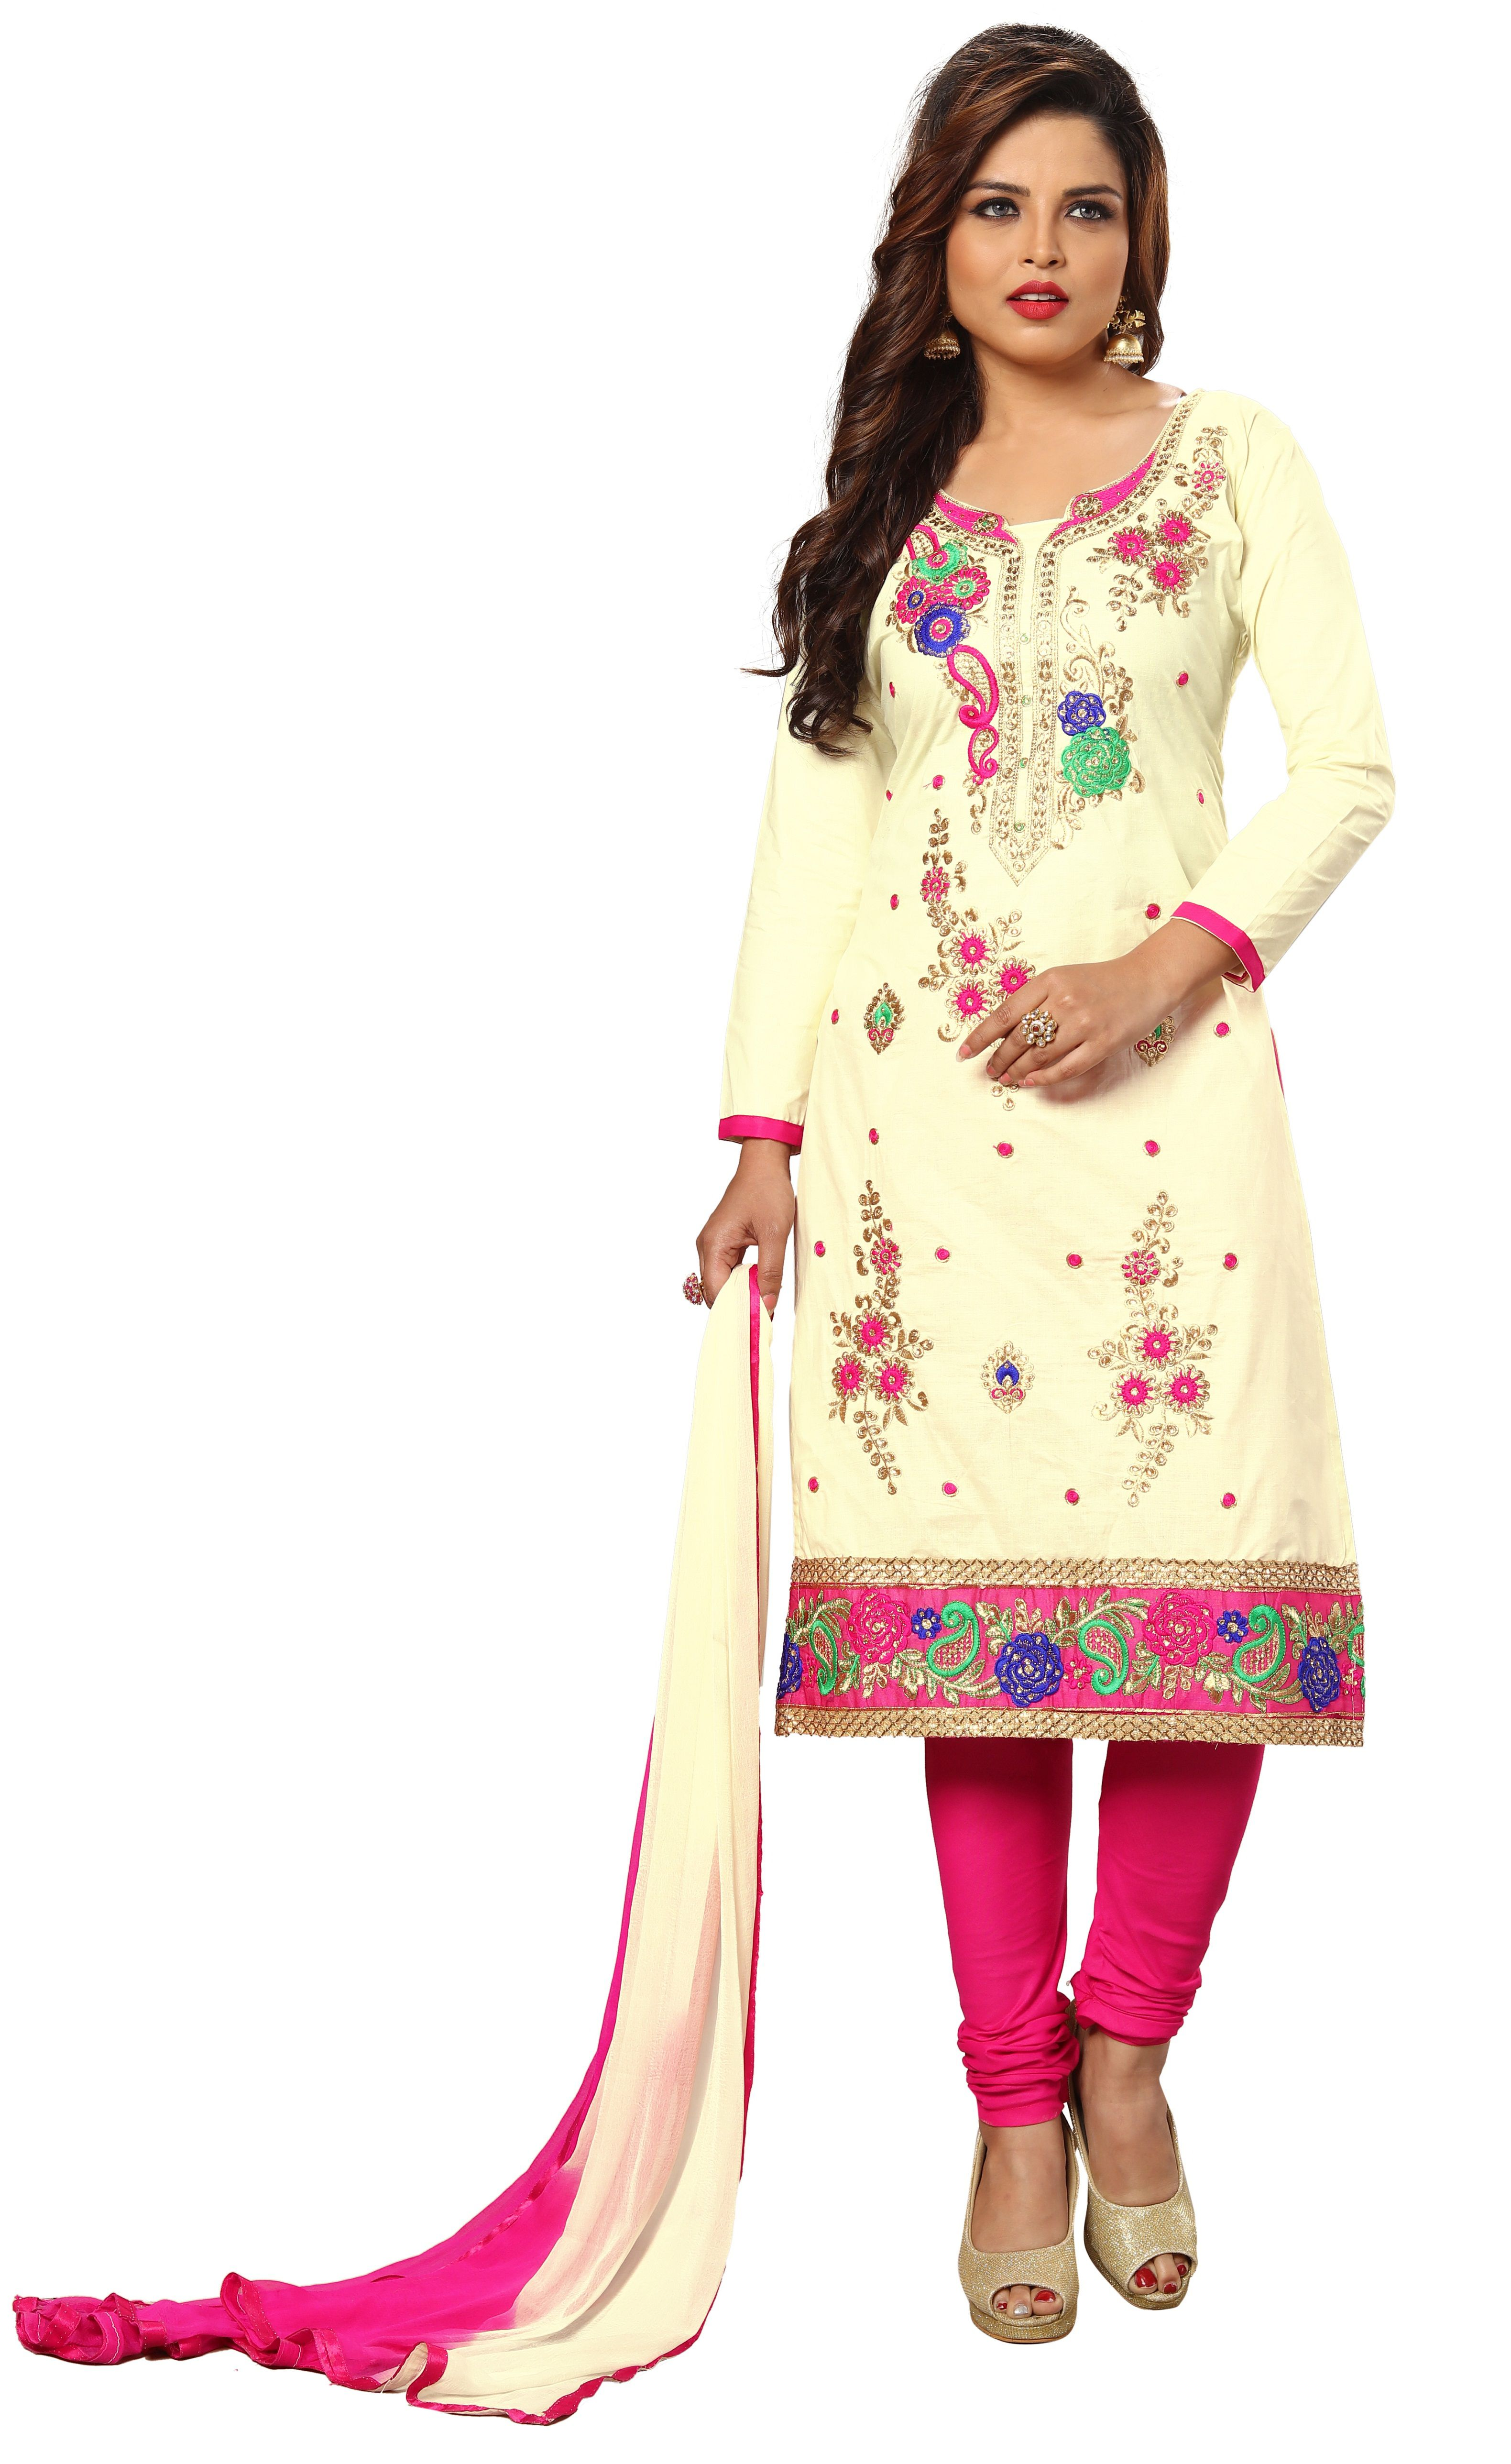 a1d547797 Nivah Fashion Pink and Beige Cotton A-line Semi-Stitched Suit - Buy ...